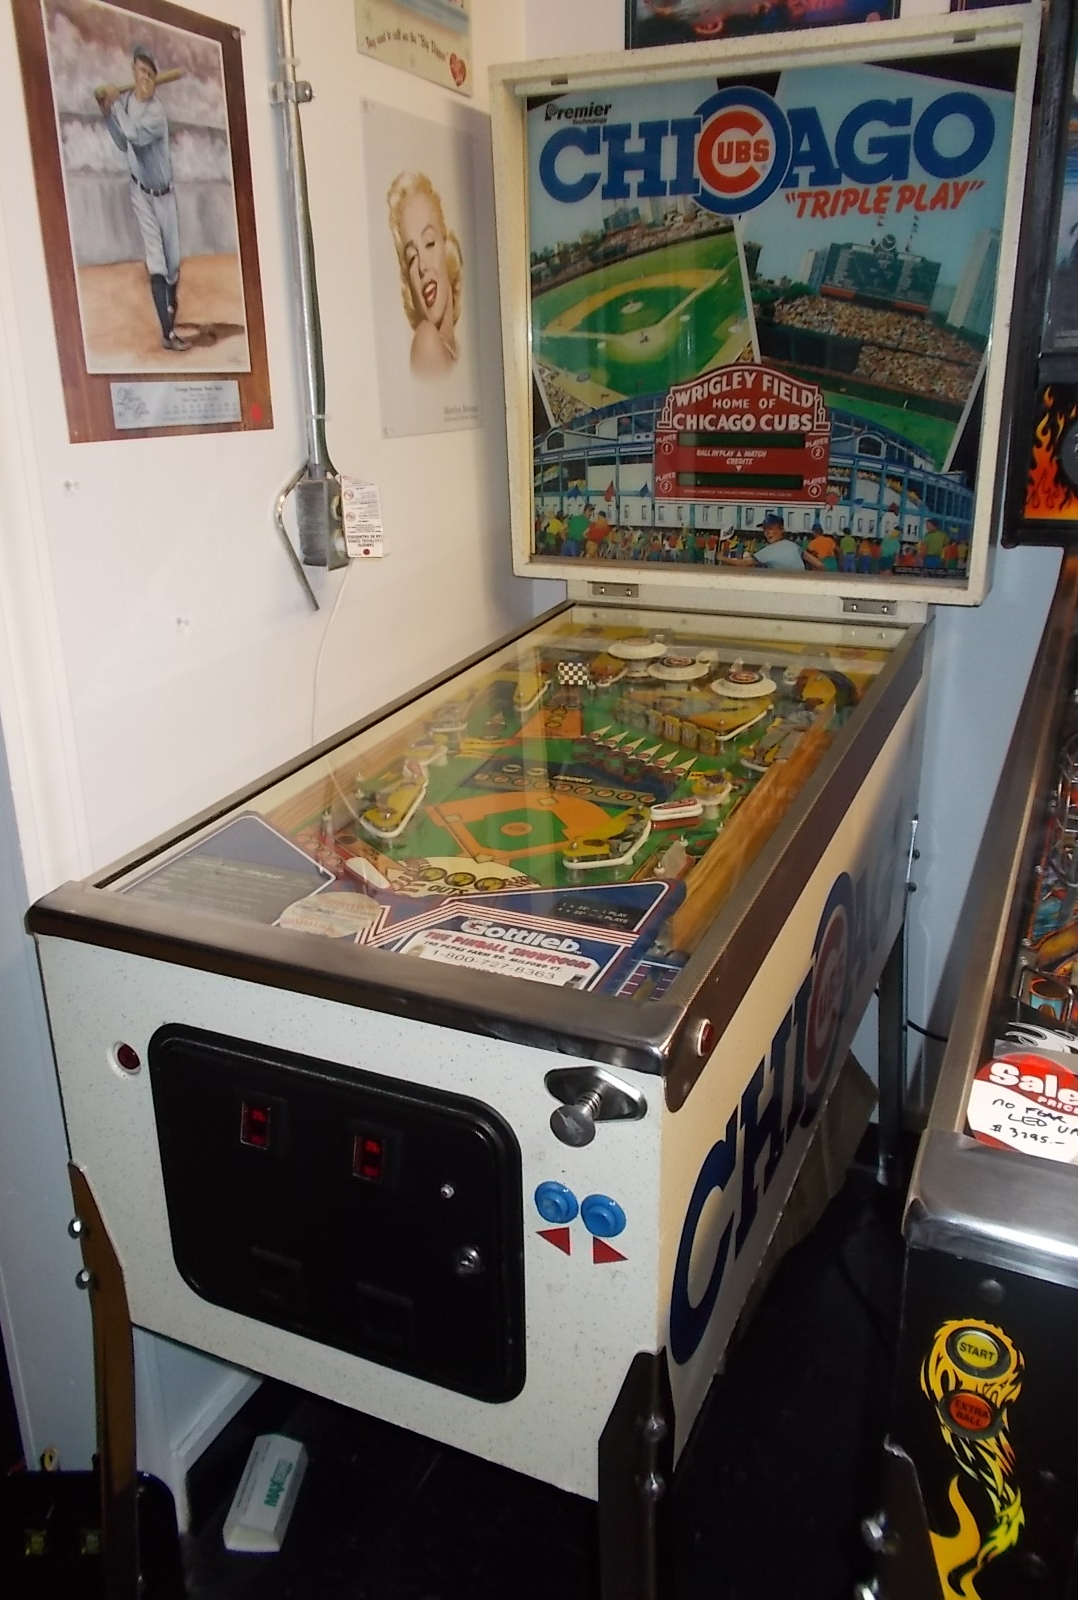 Chicago Cubs Quot Triple Play Quot Pinball Machine Game By Premier